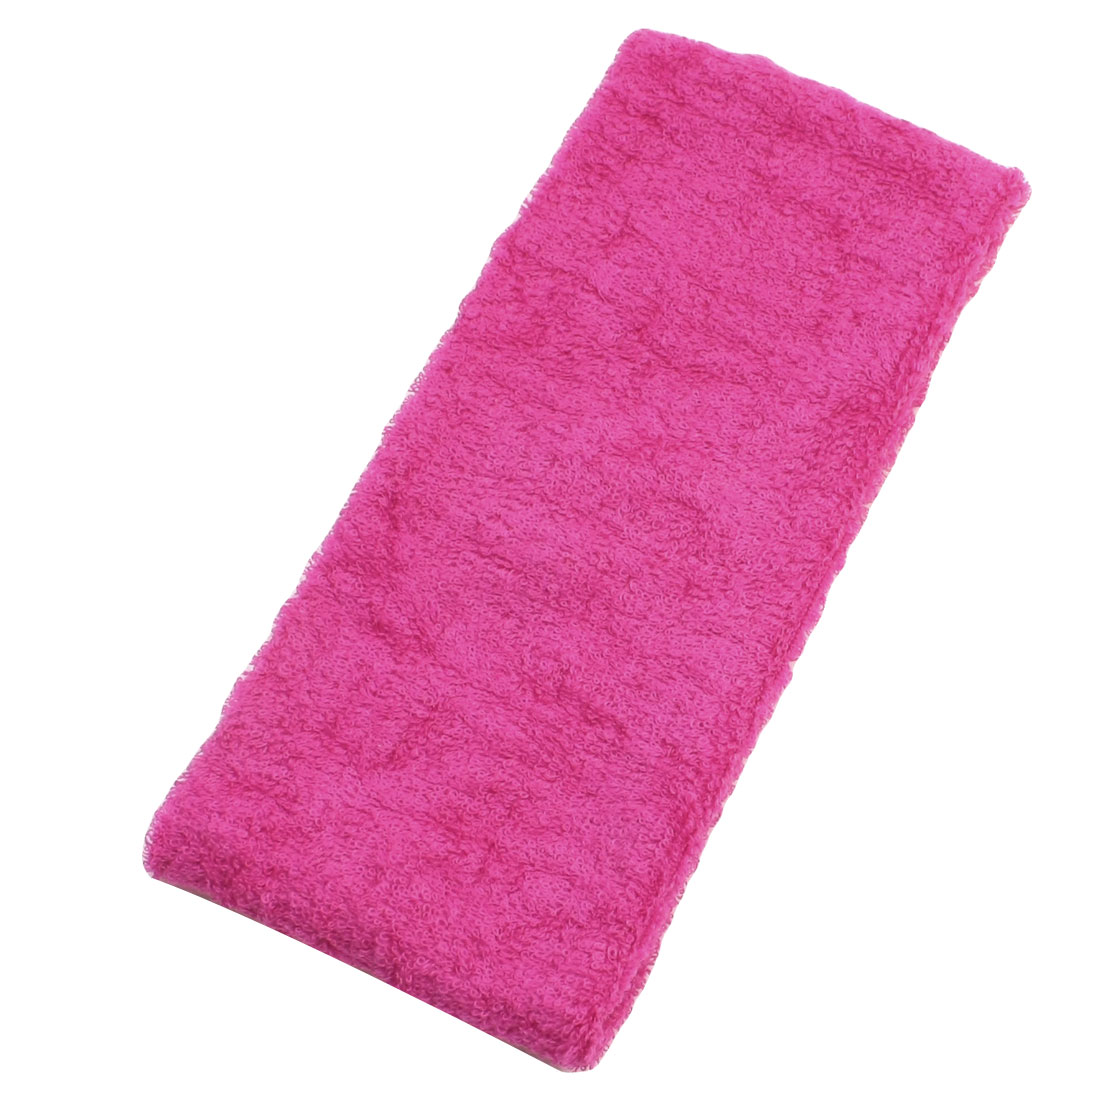 2 Pcs Fuchsia Absorbent Elastic Terry Head Band for Sports